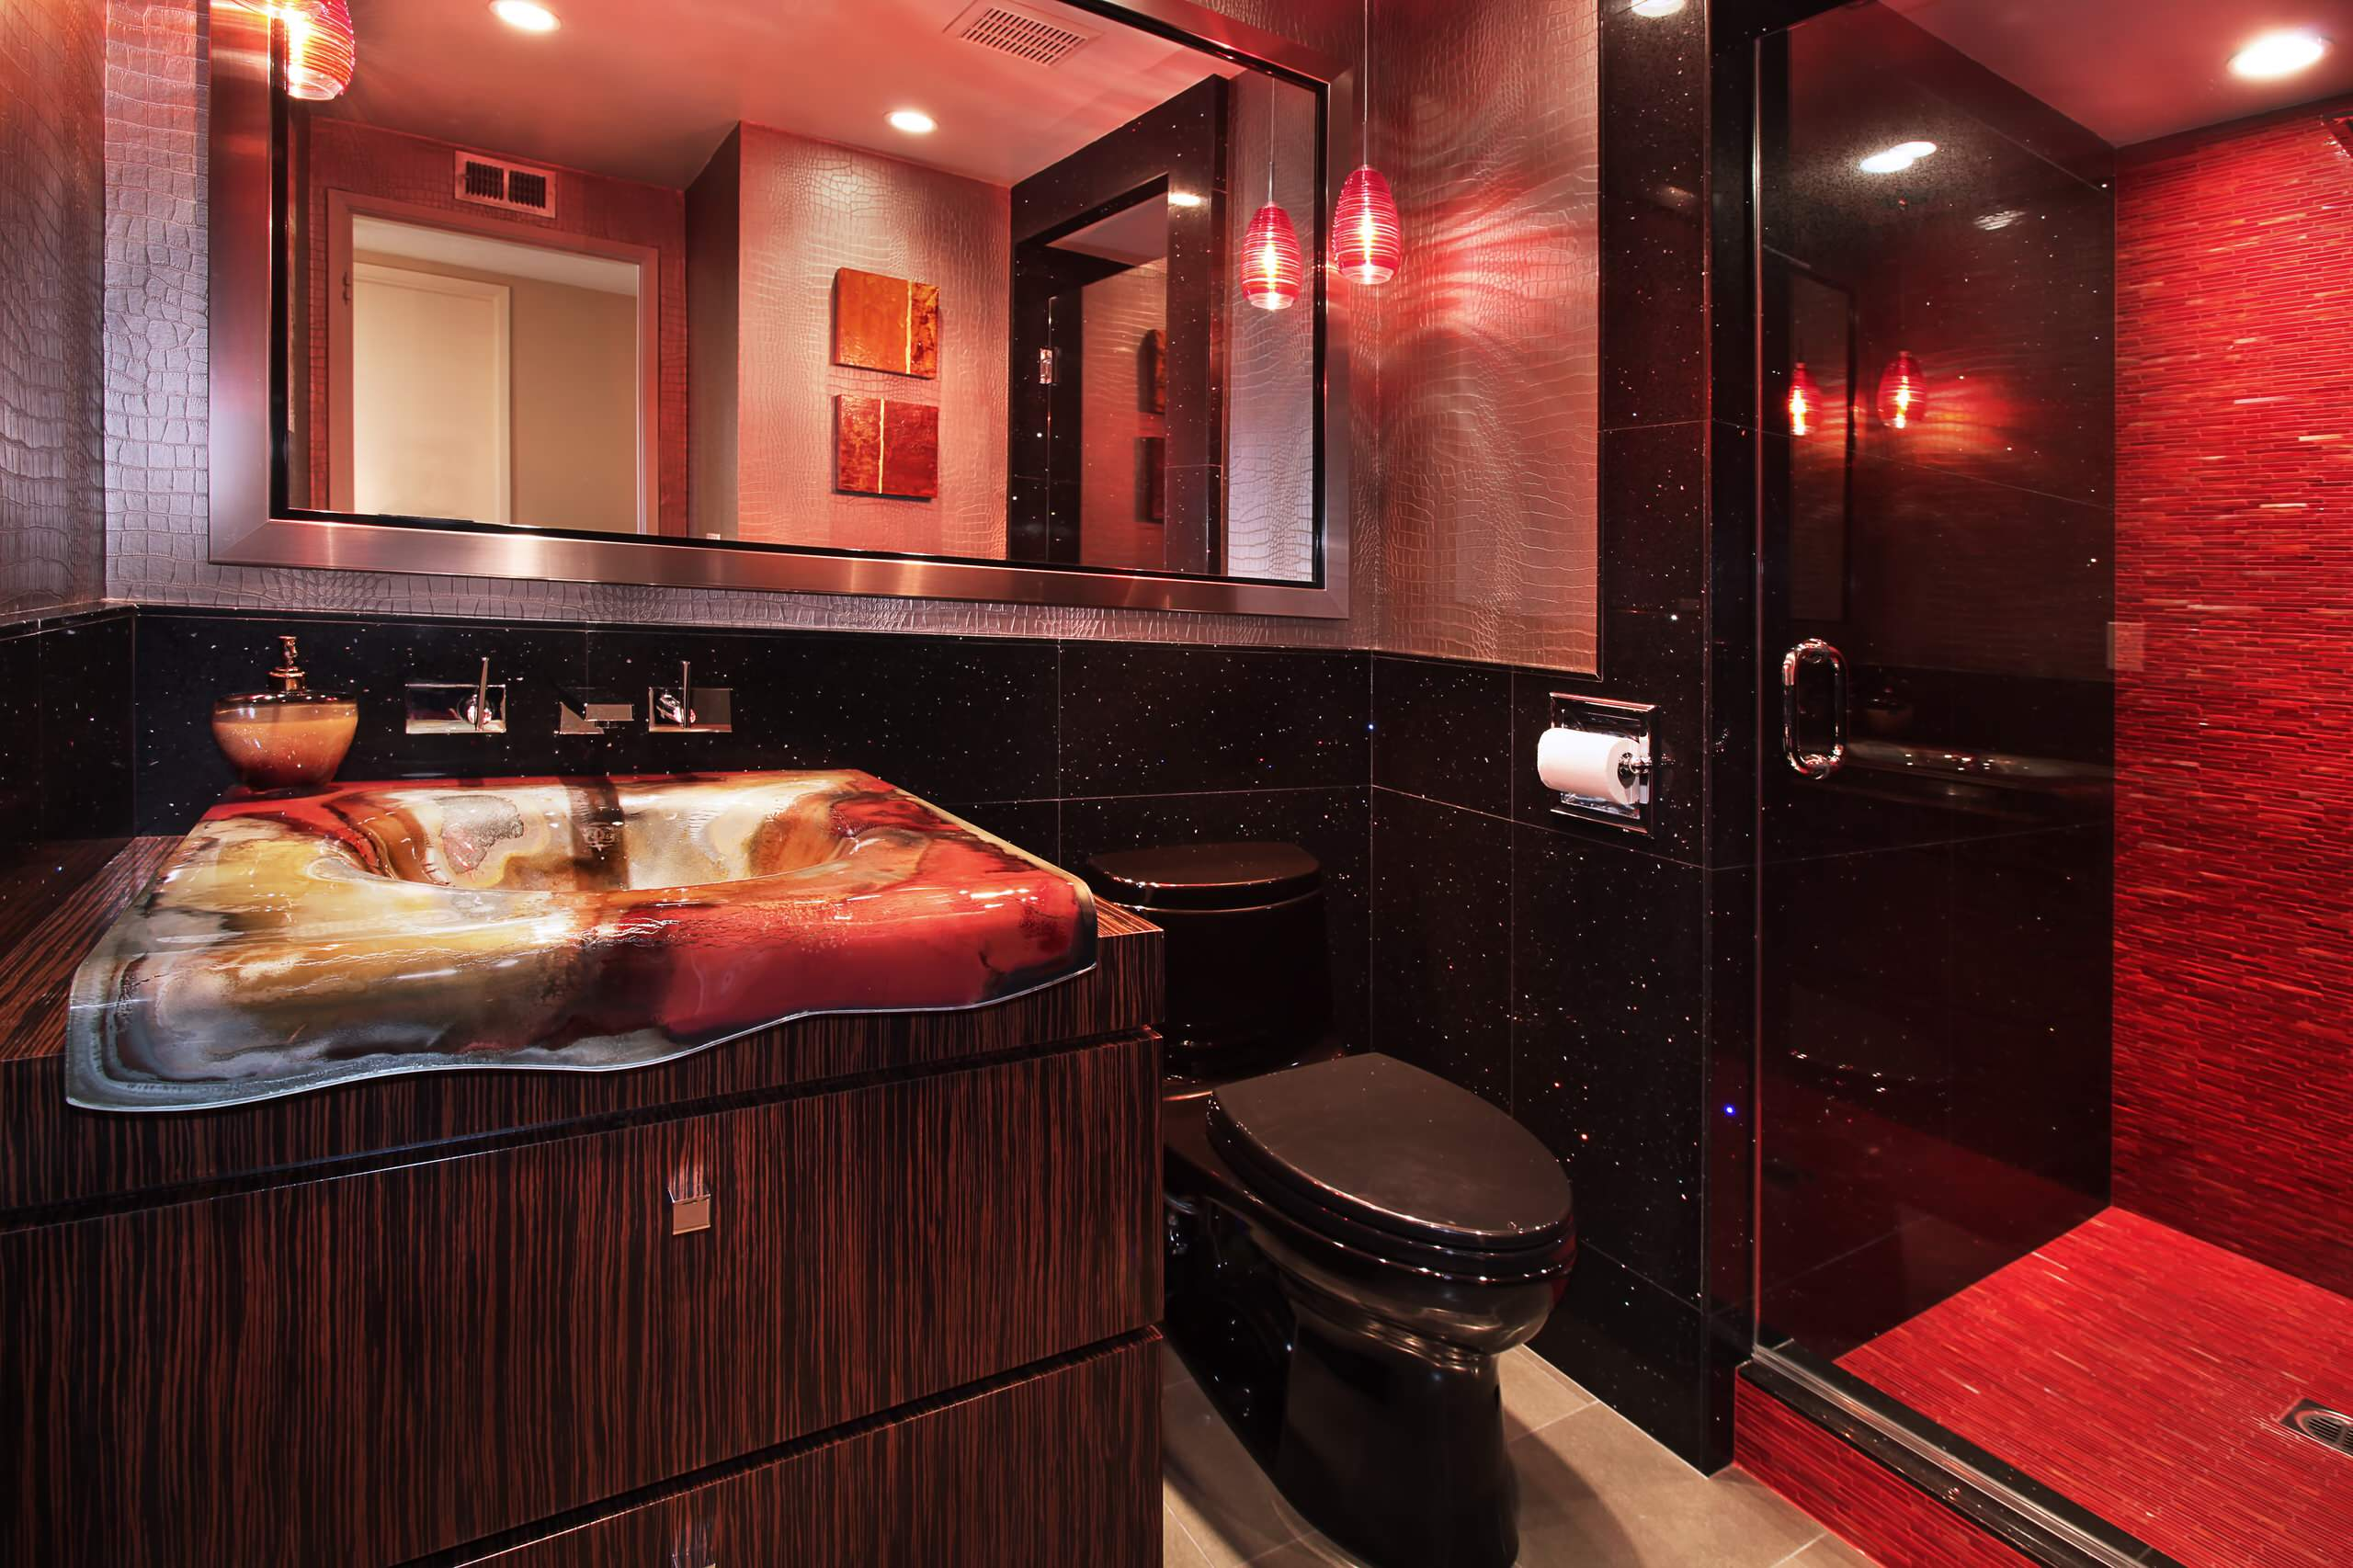 Red And Black Bathroom Ideas Houzz, Black And Red Bathroom